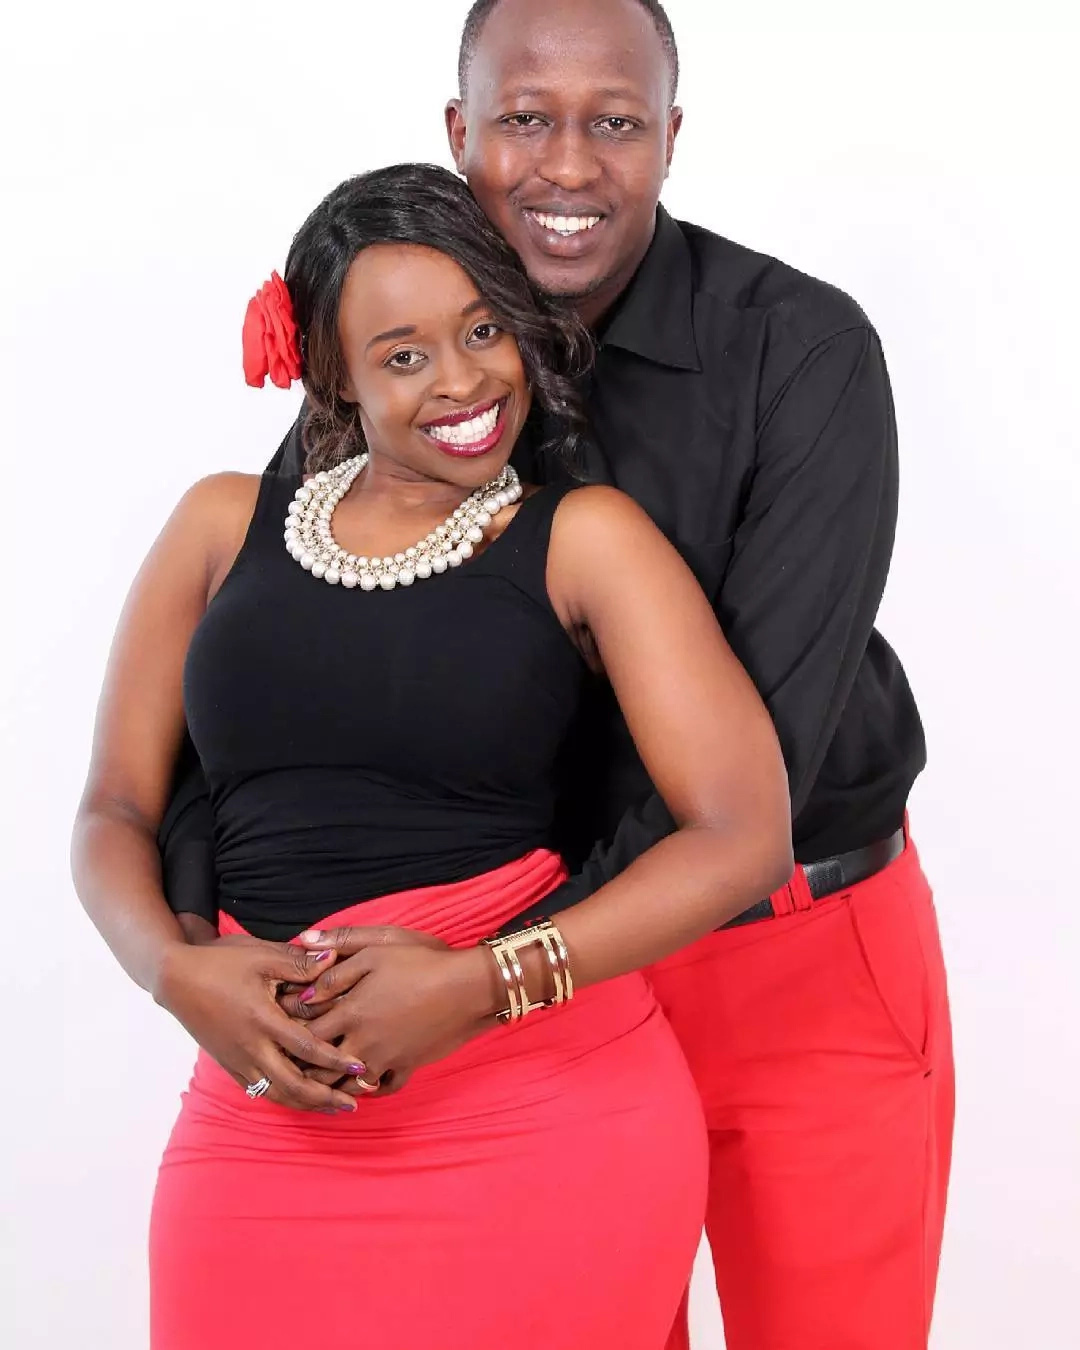 Former NTV presenter Faith Muturi is still hot while pregnant